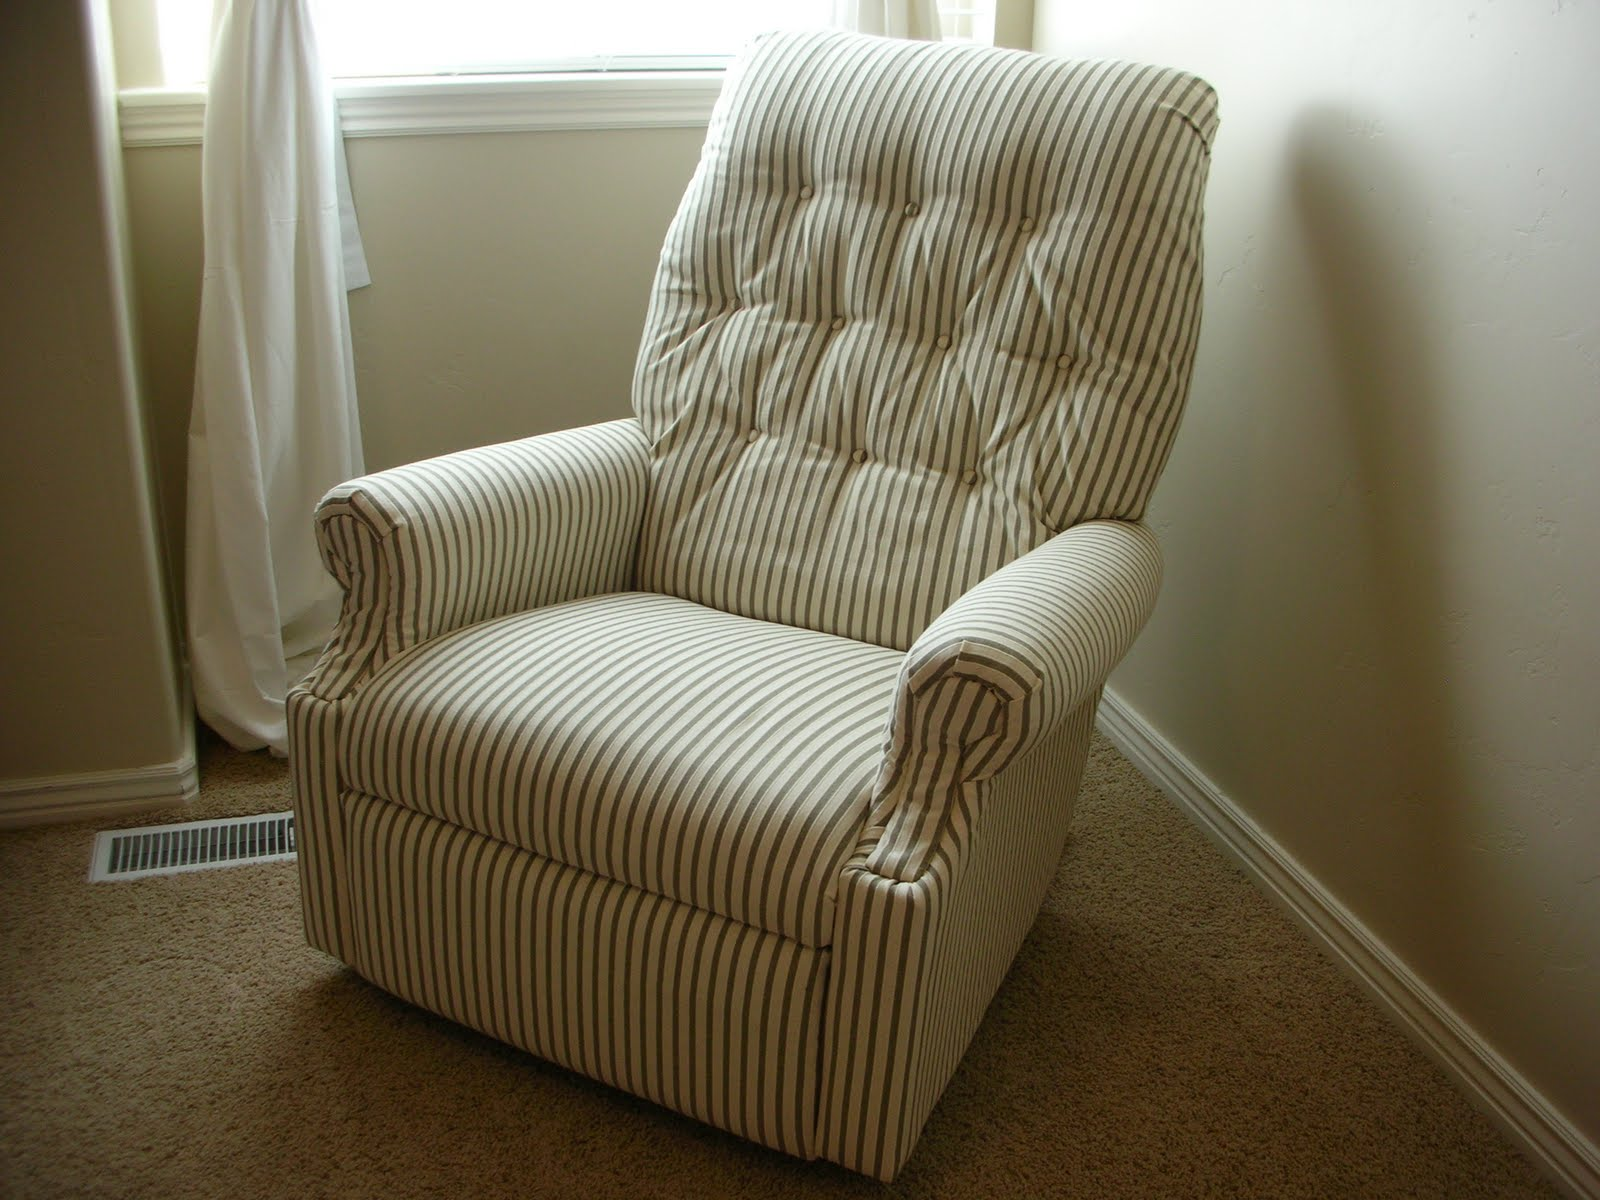 DIY Reupholster An Old La-Z-Boy Recliner : white lazy boy recliner - islam-shia.org